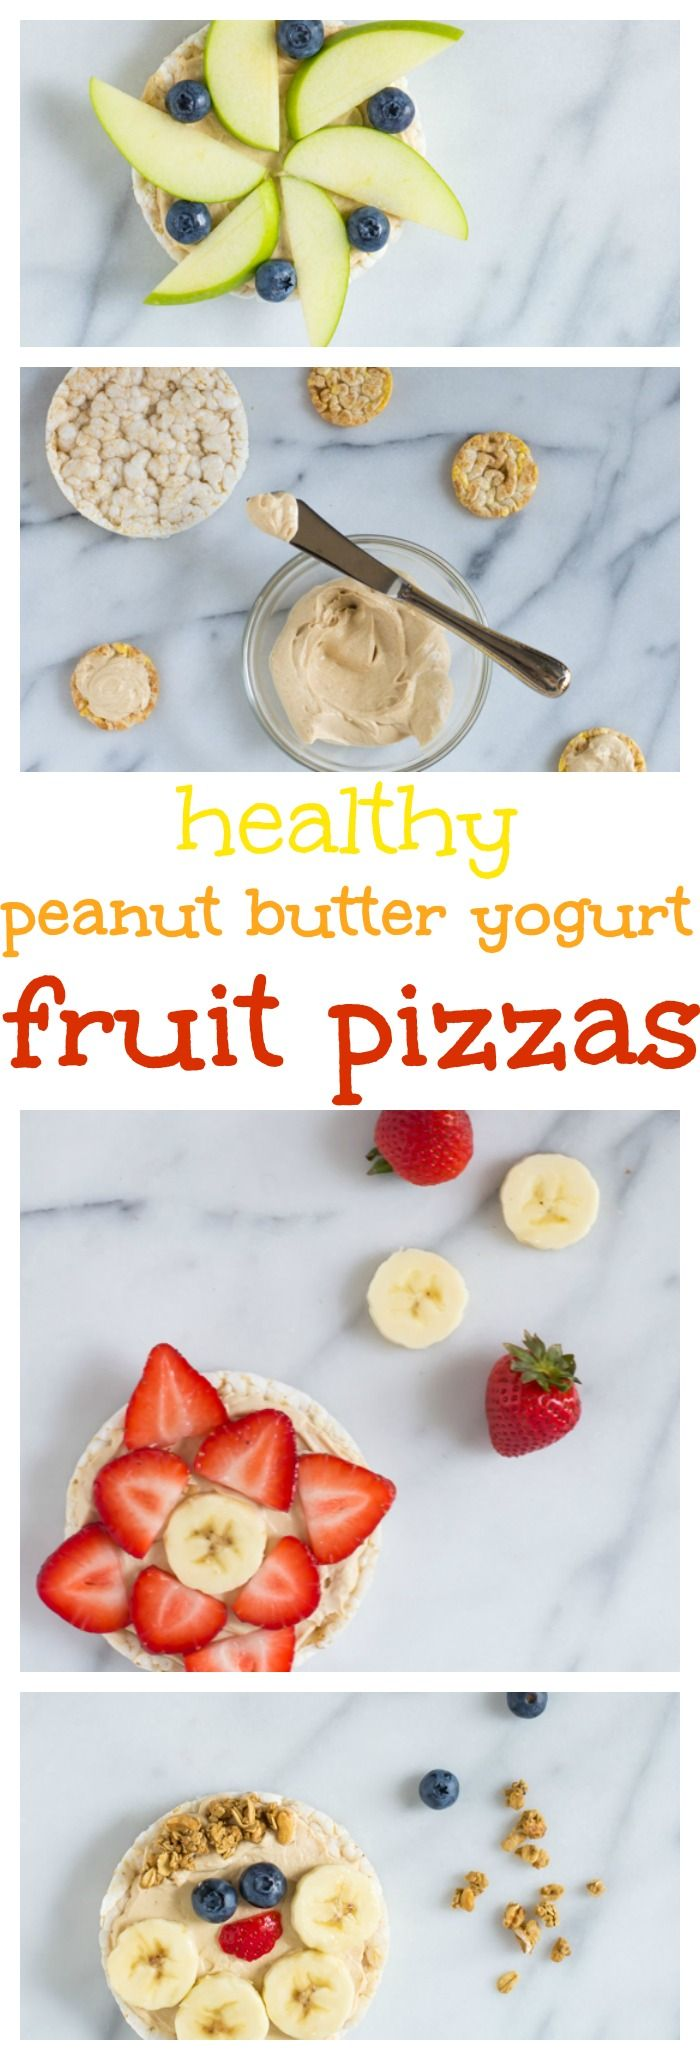 Healthy Peanut Butter Yogurt Fruit Pizzas. Perfect on the go breakfast or afterschool snack!